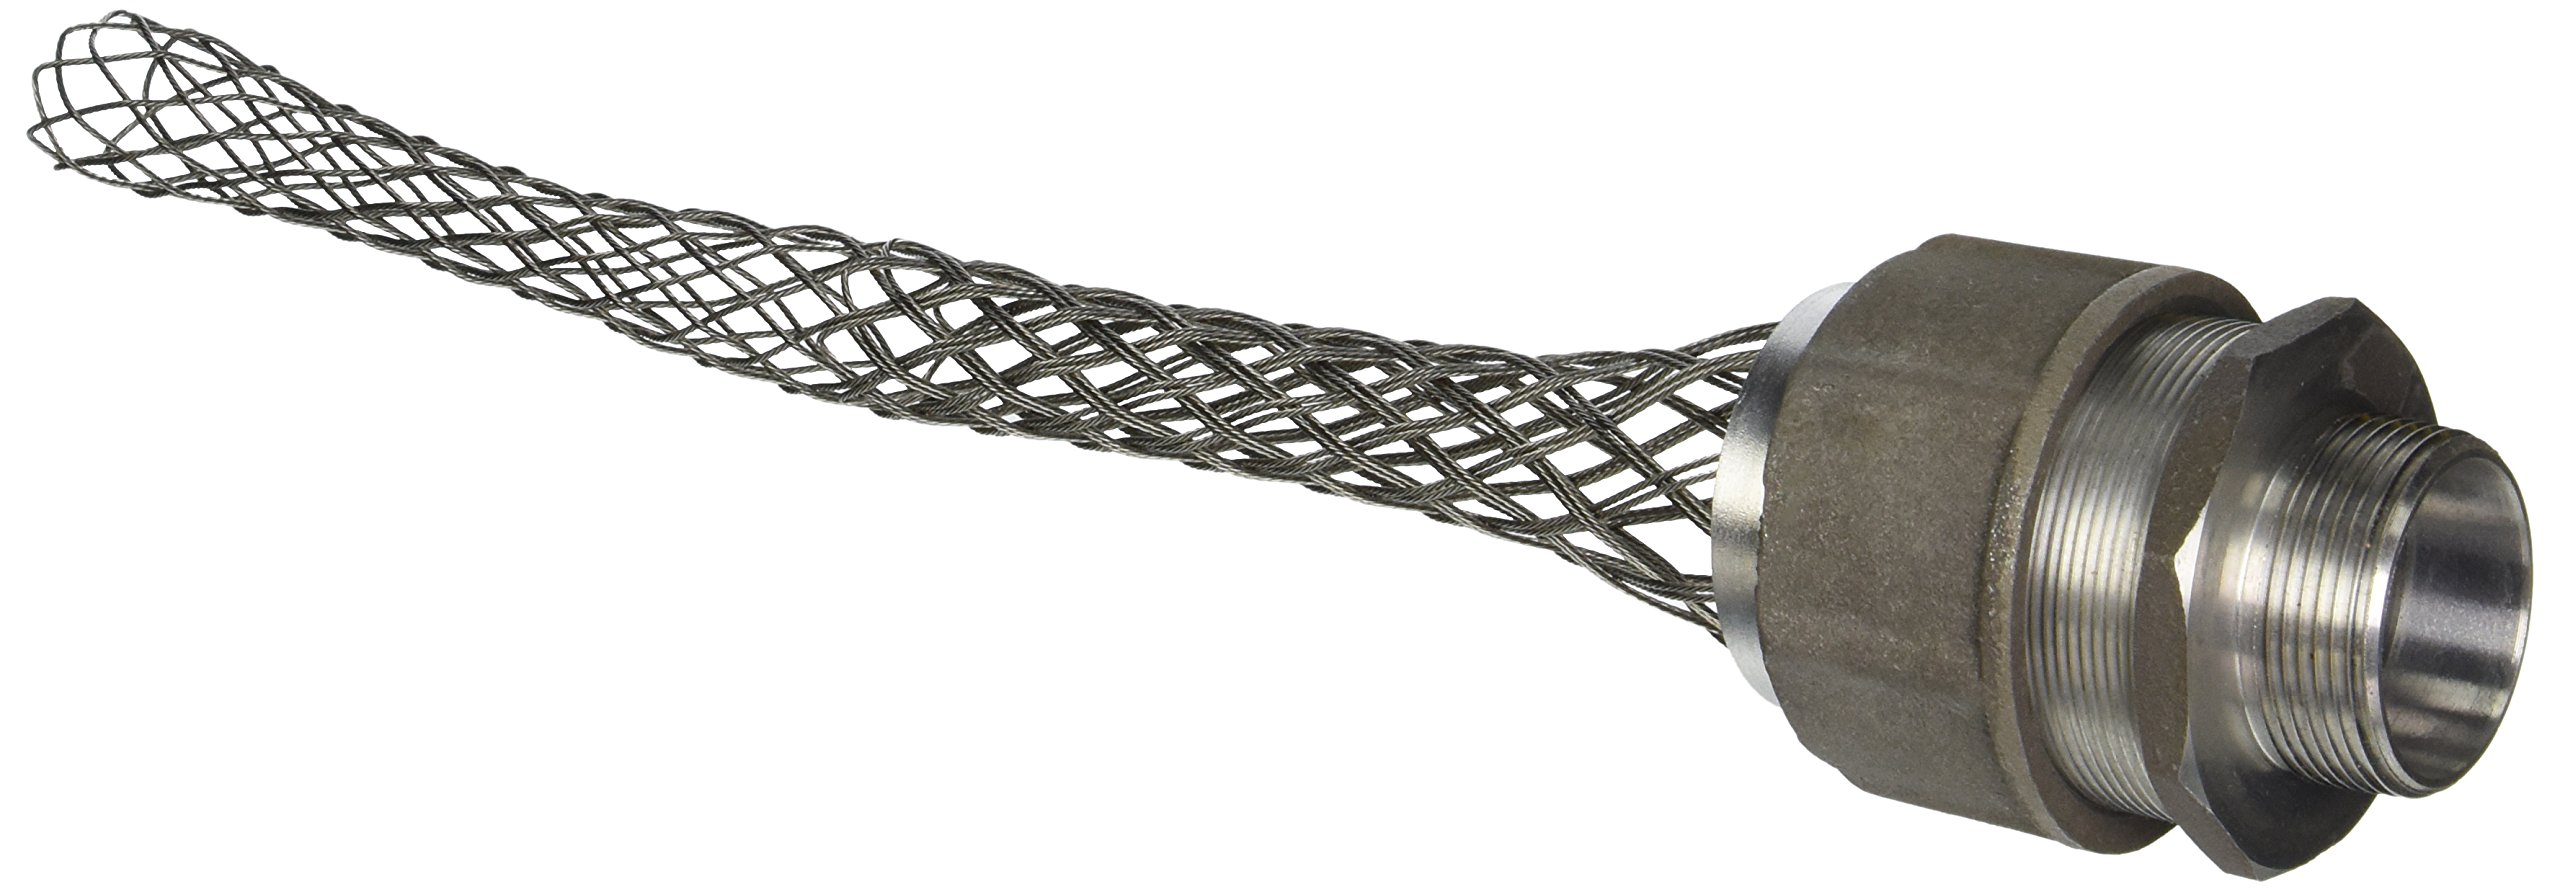 Hubbell 074011254 Deluxe Cord Grip, Straight Male, 1 1/2'' with Mesh, 10.4''-10.5'' Cable